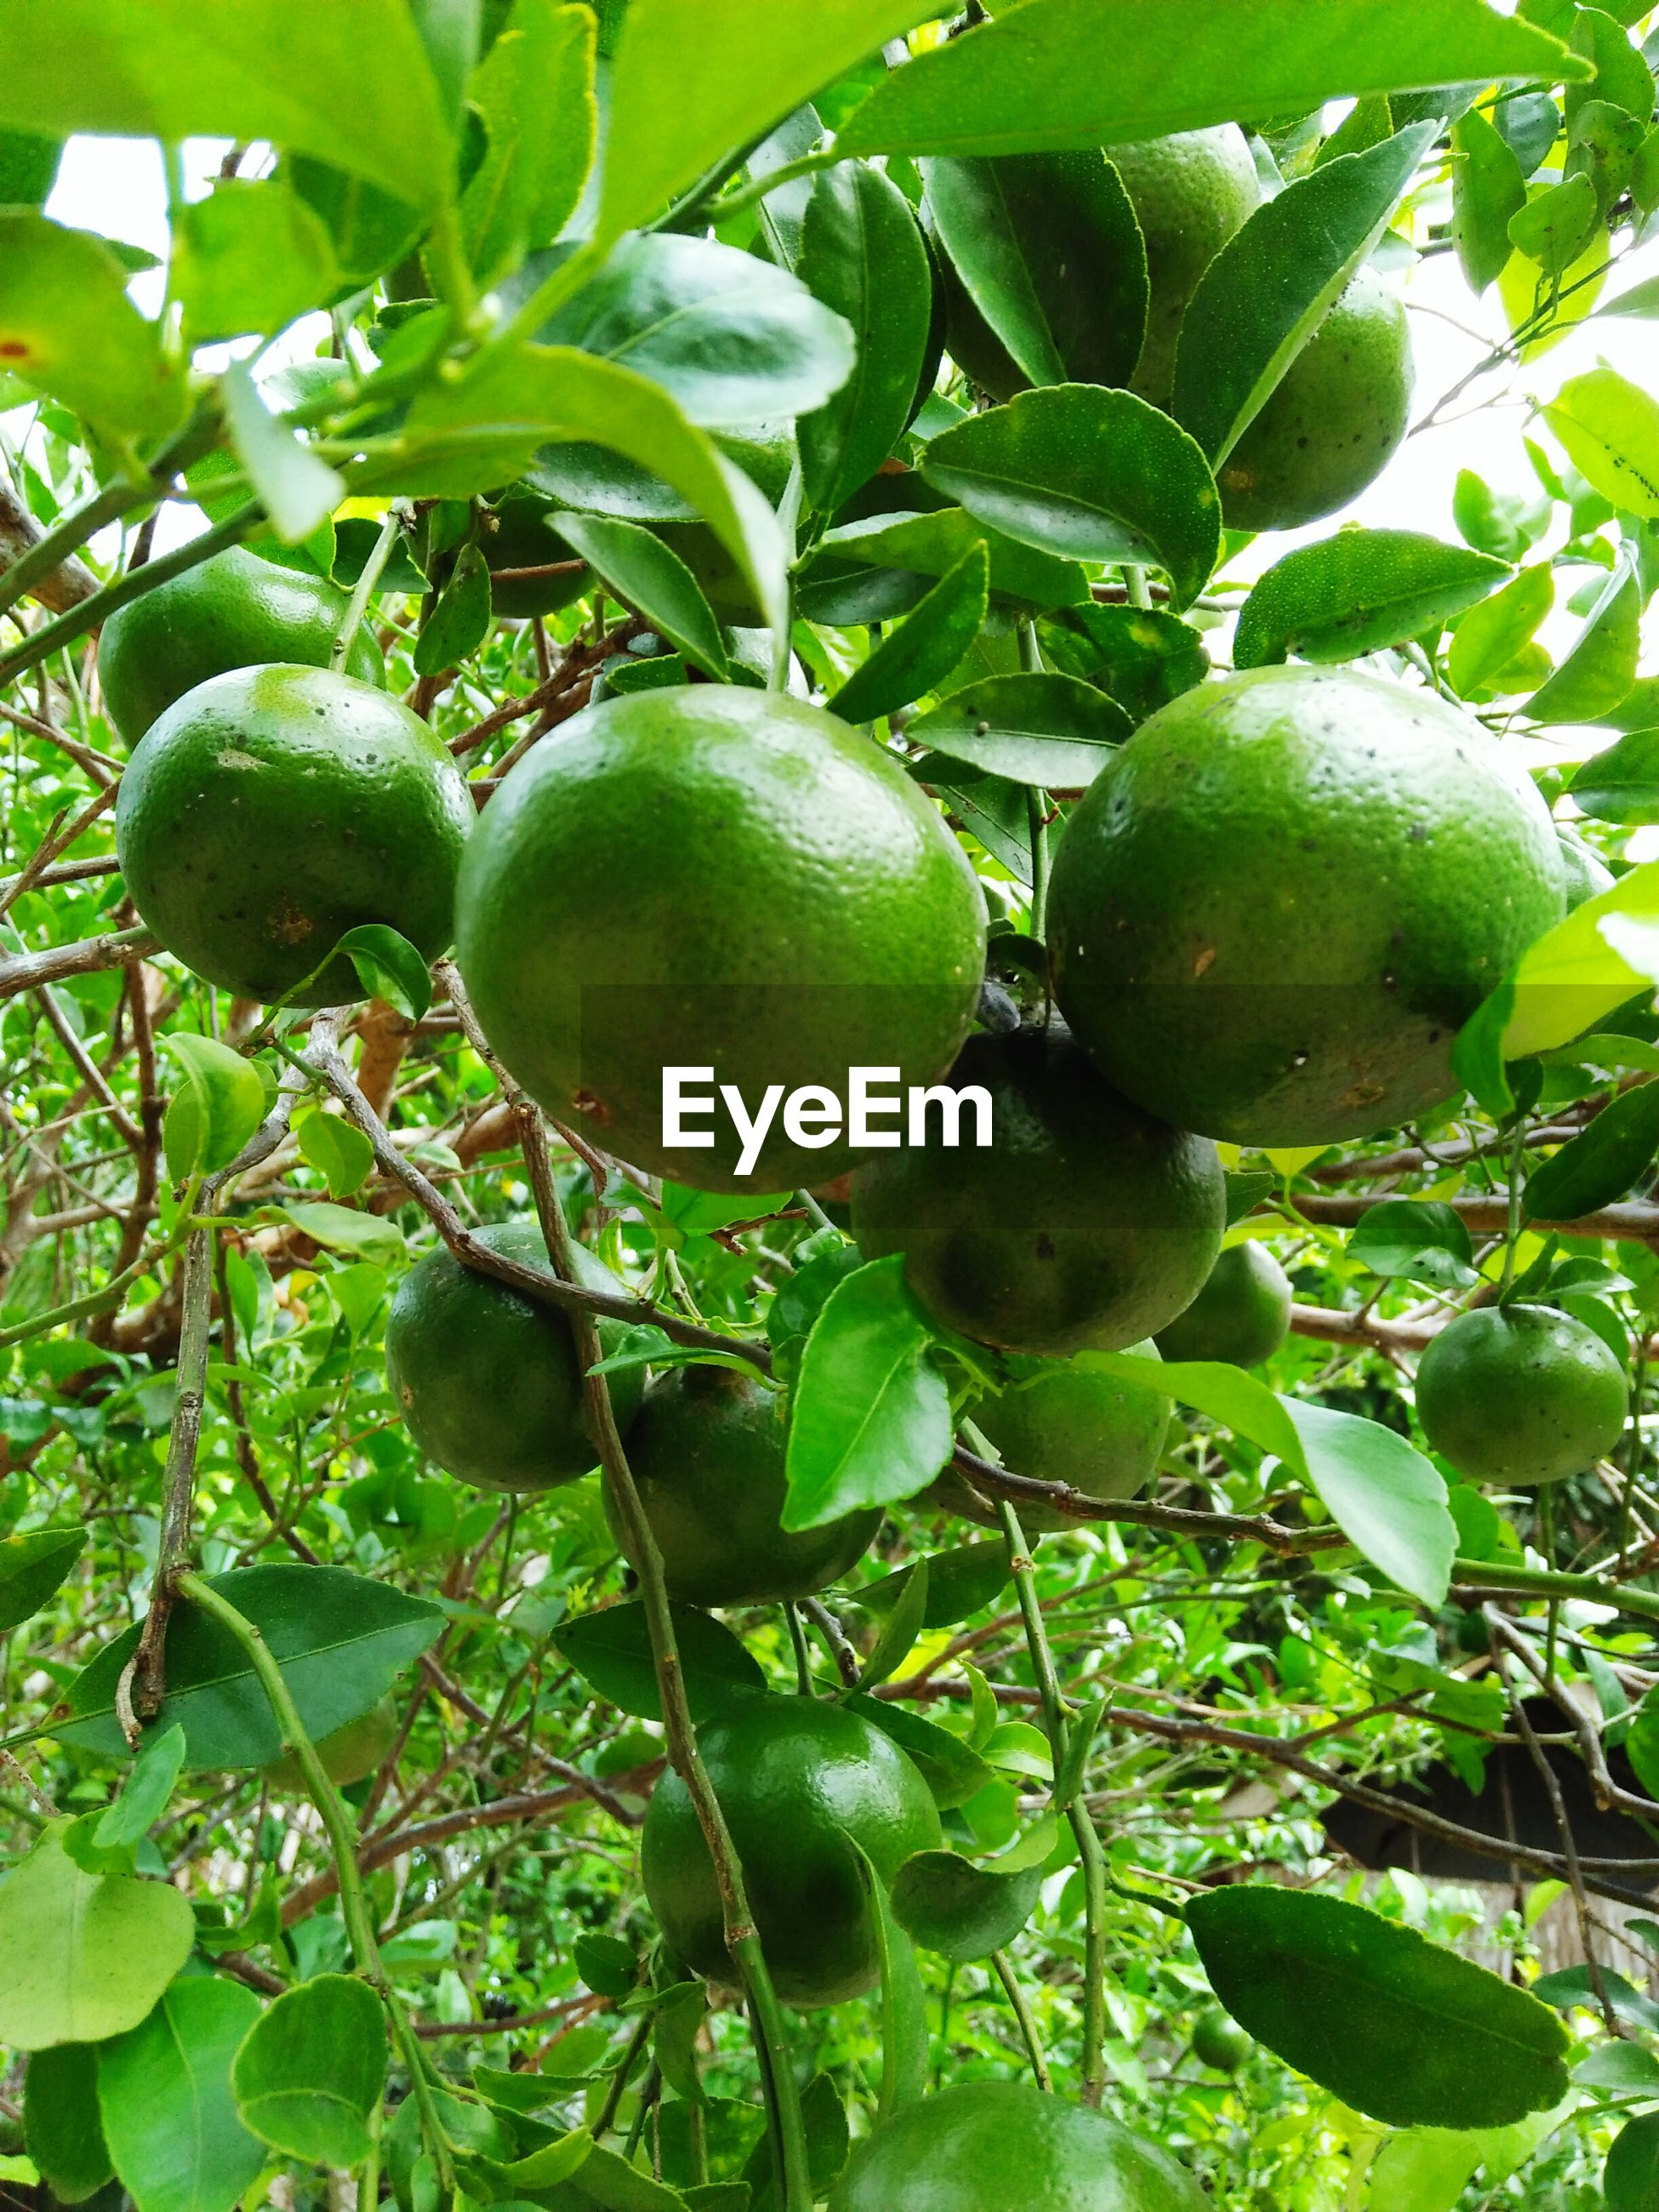 green color, fruit, food and drink, food, freshness, healthy eating, growth, leaf, tree, outdoors, unripe, no people, day, nature, branch, close-up